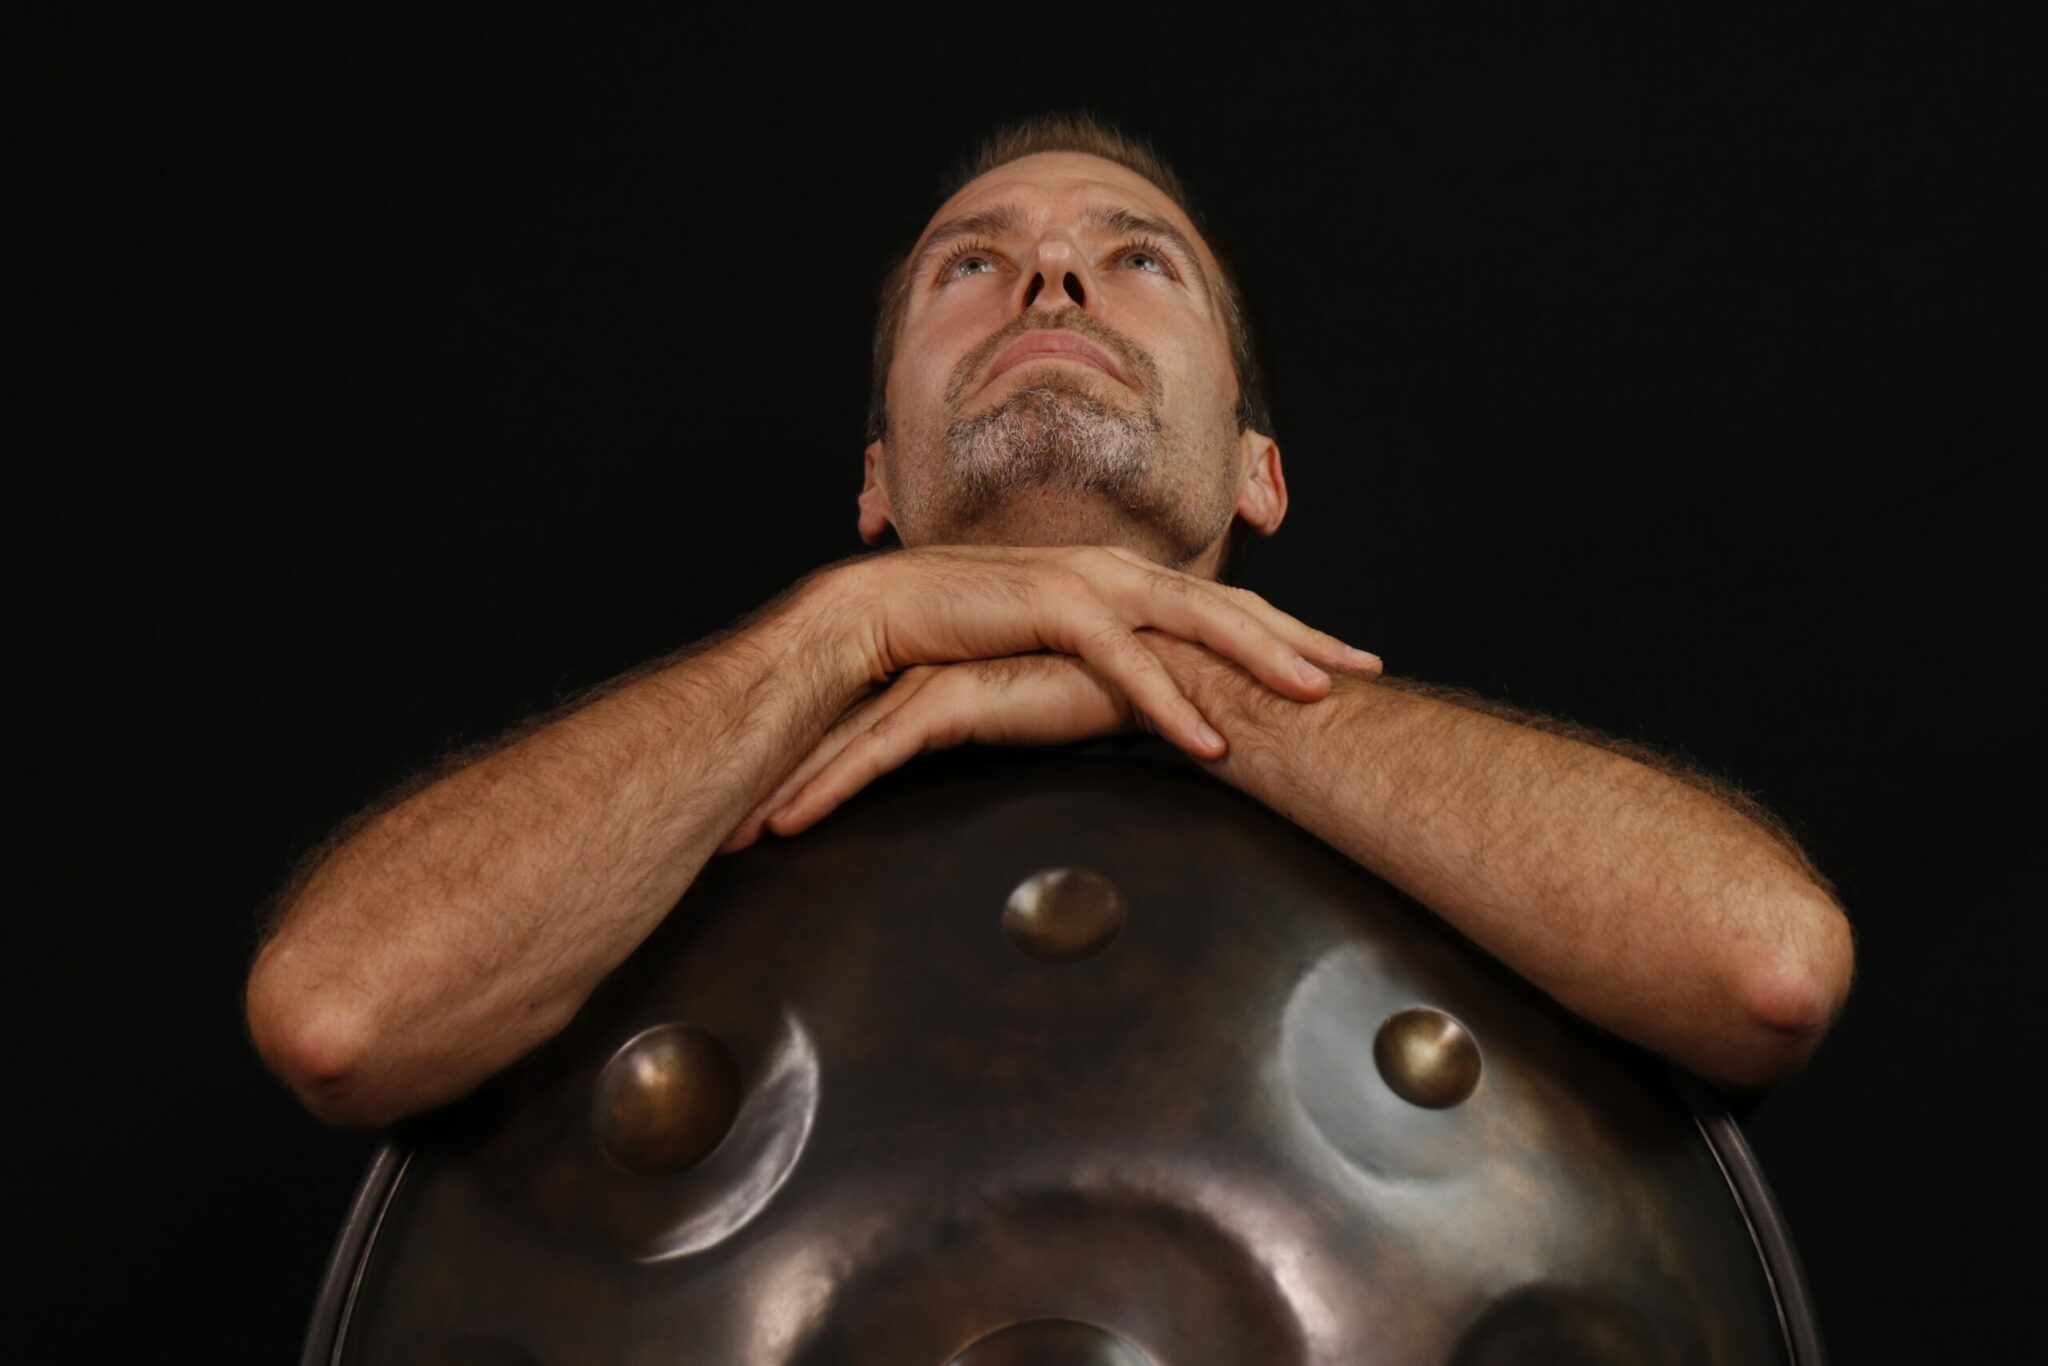 Handpan - Jérémy Nattagh